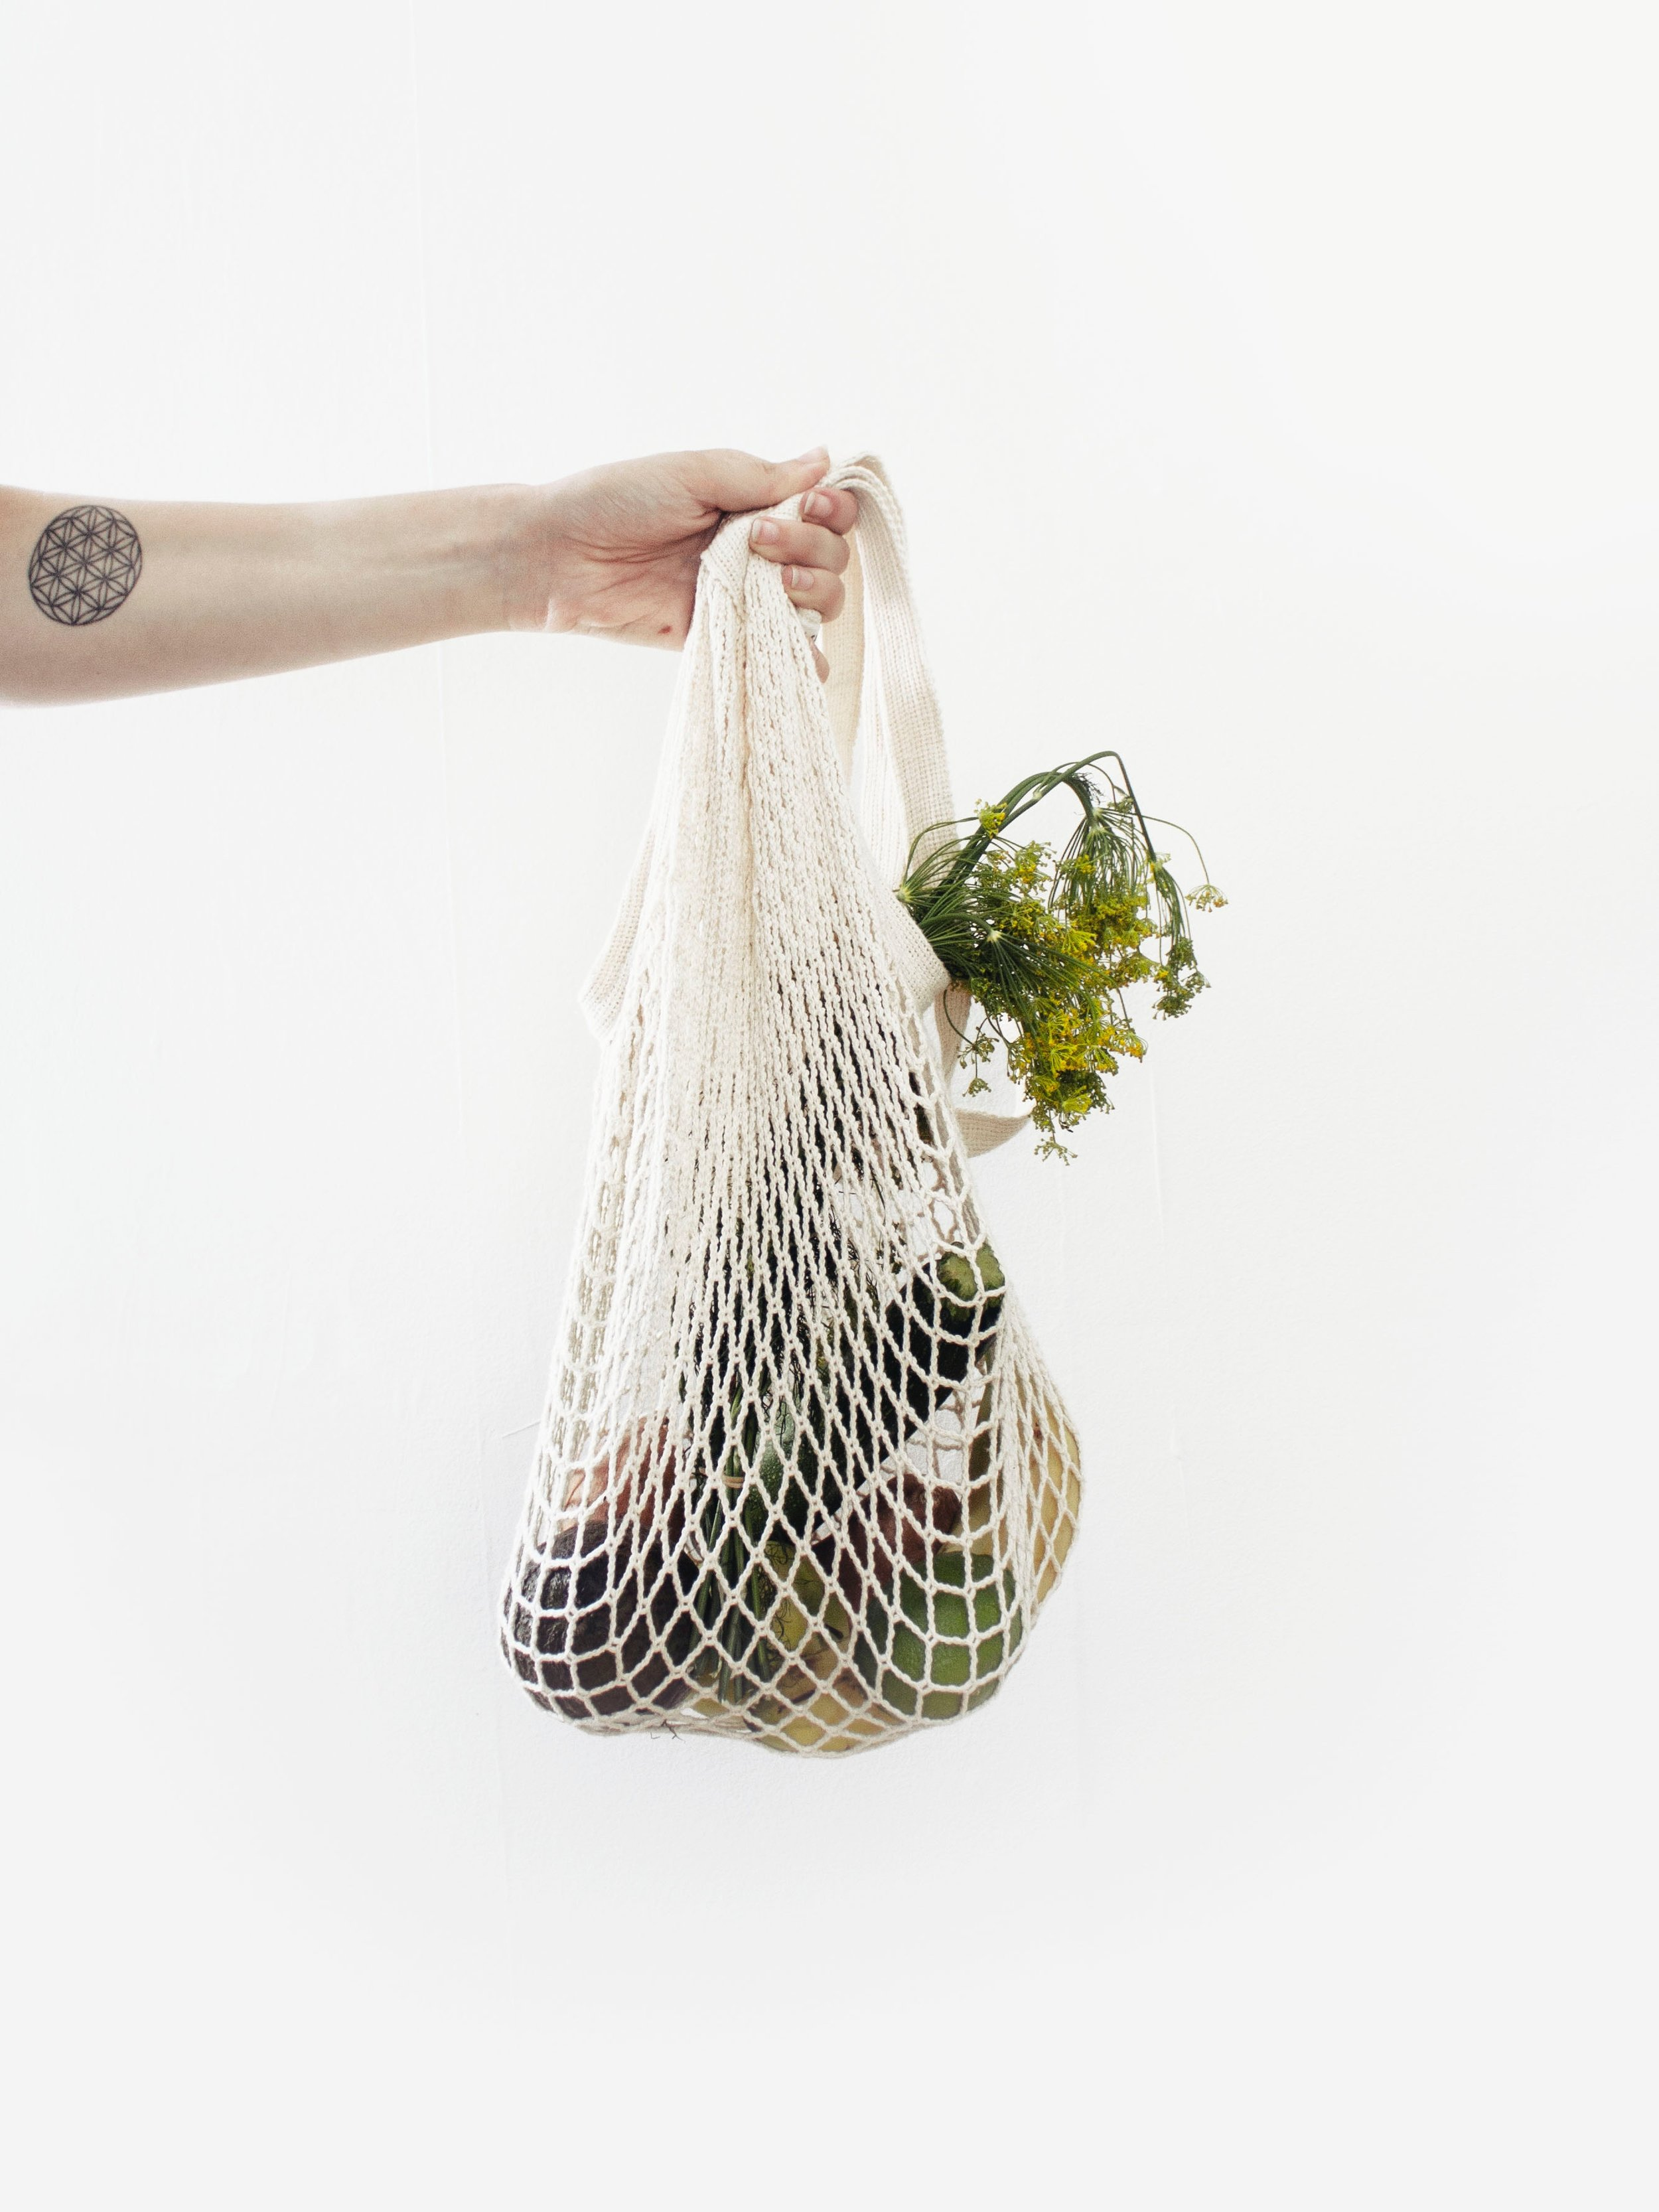 Should Single Use Plastic Bags Be Banned?